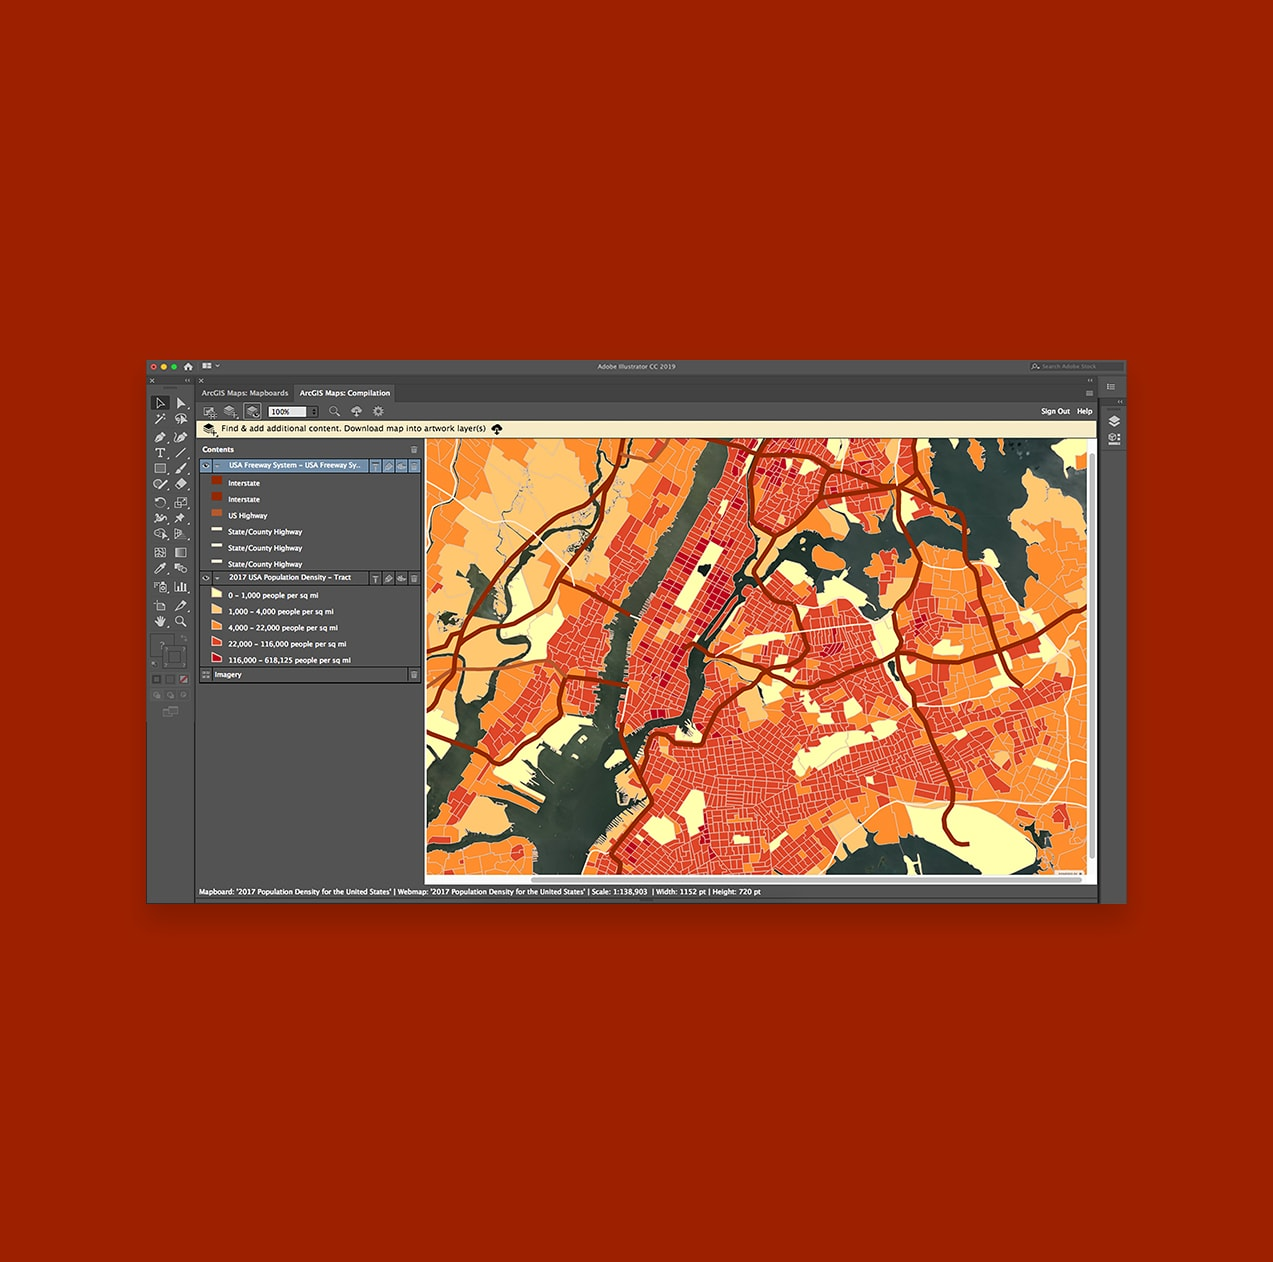 Arcgis Maps For Adobe Creative Cloud Design With Data Driven Maps - Us-cloud-map